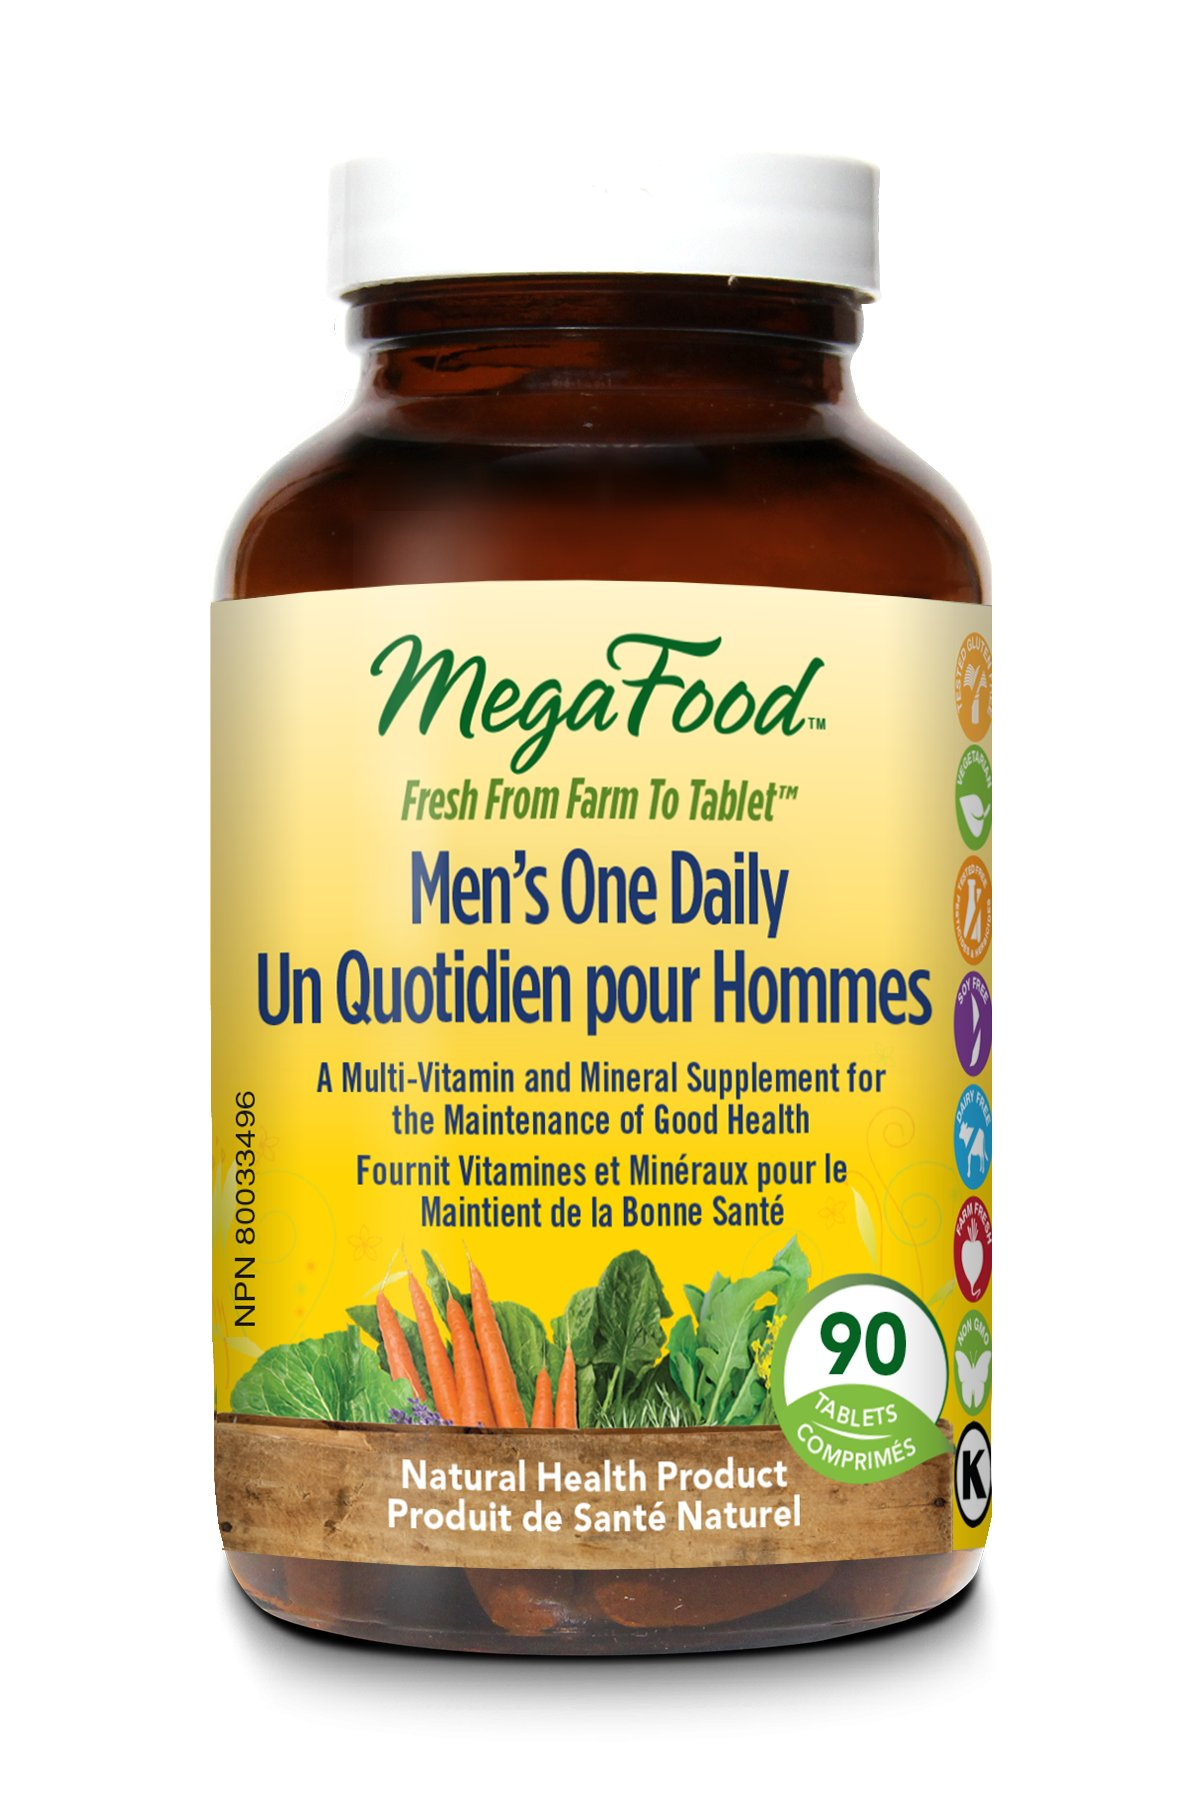 MegaFood Men's One Daily Helps Men Feel Healthier